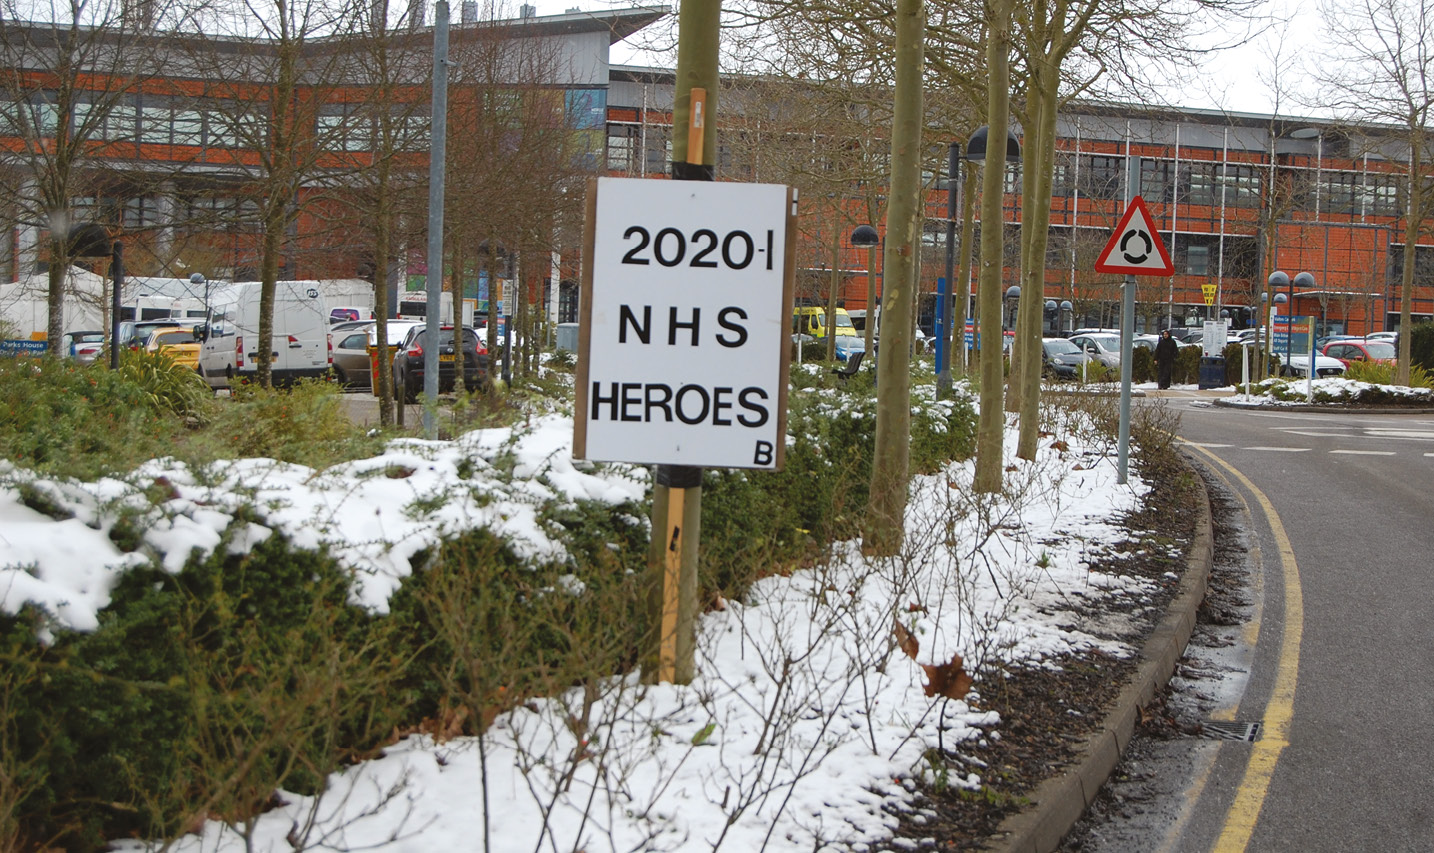 RIGHT During the pandemic, as well as focusing on publishing previously excavated sites, the Unit devoted their energies to supporting NHS staff at the local hospital.